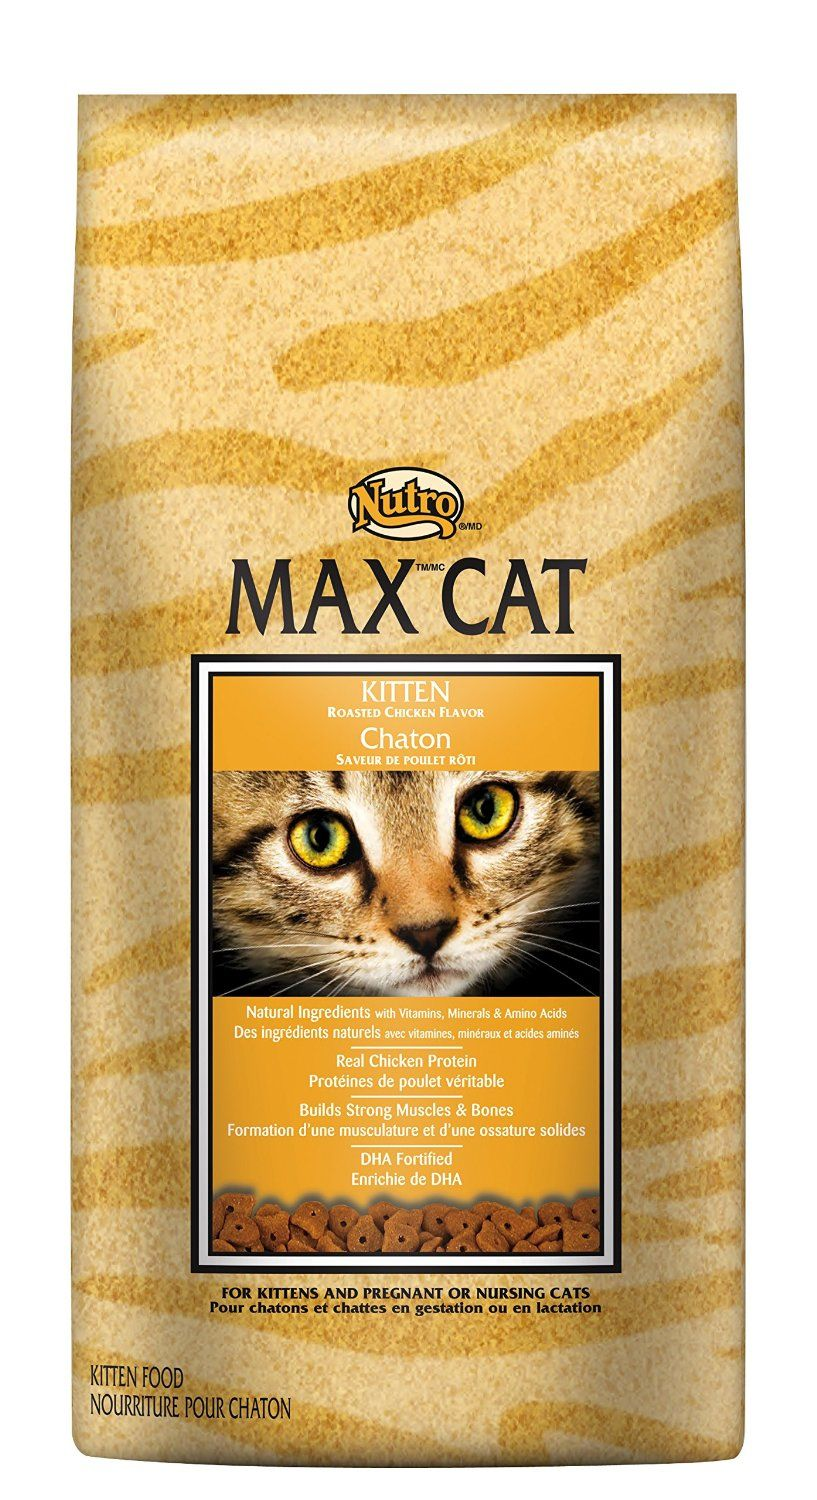 Nutro Max Cat Kitten Roasted Chicken Flavor Dry Cat Food 16 Pounds Cat Food Dry Cat Food Kitten Food Chicken Cat